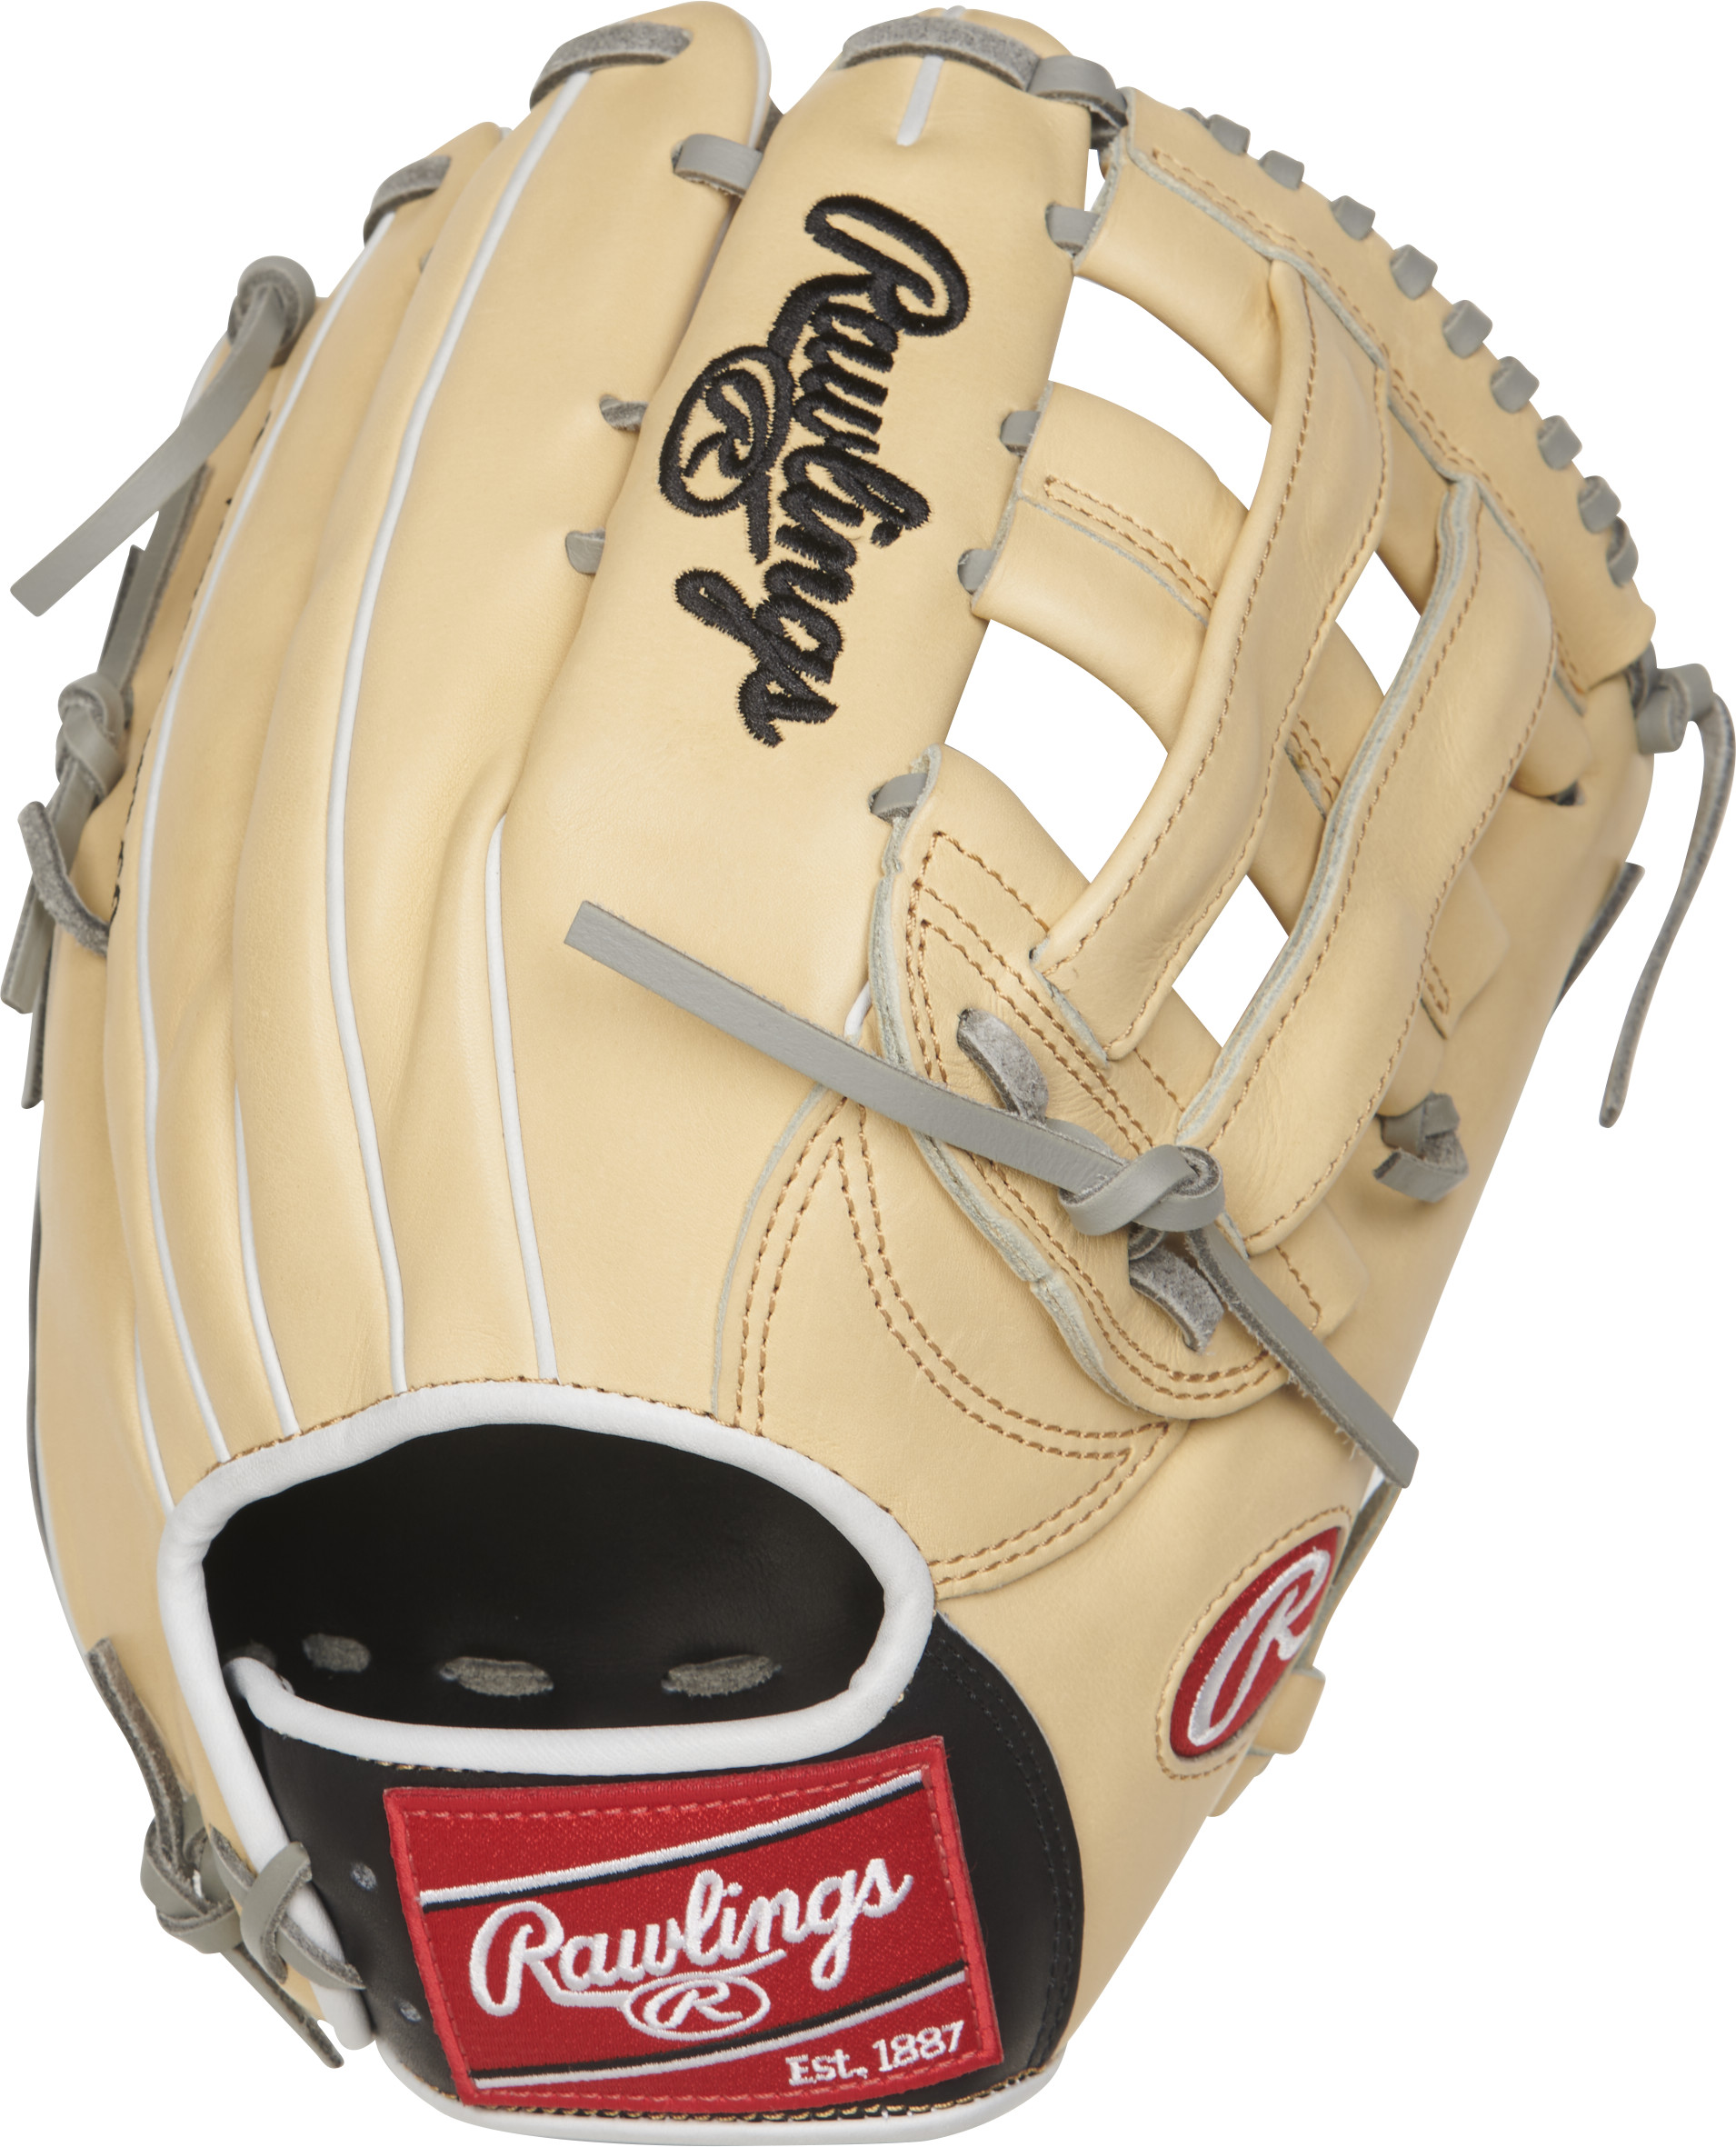 http://www.bestbatdeals.com/images/gloves/rawlings/PRO3039-6CBFS-2.jpg